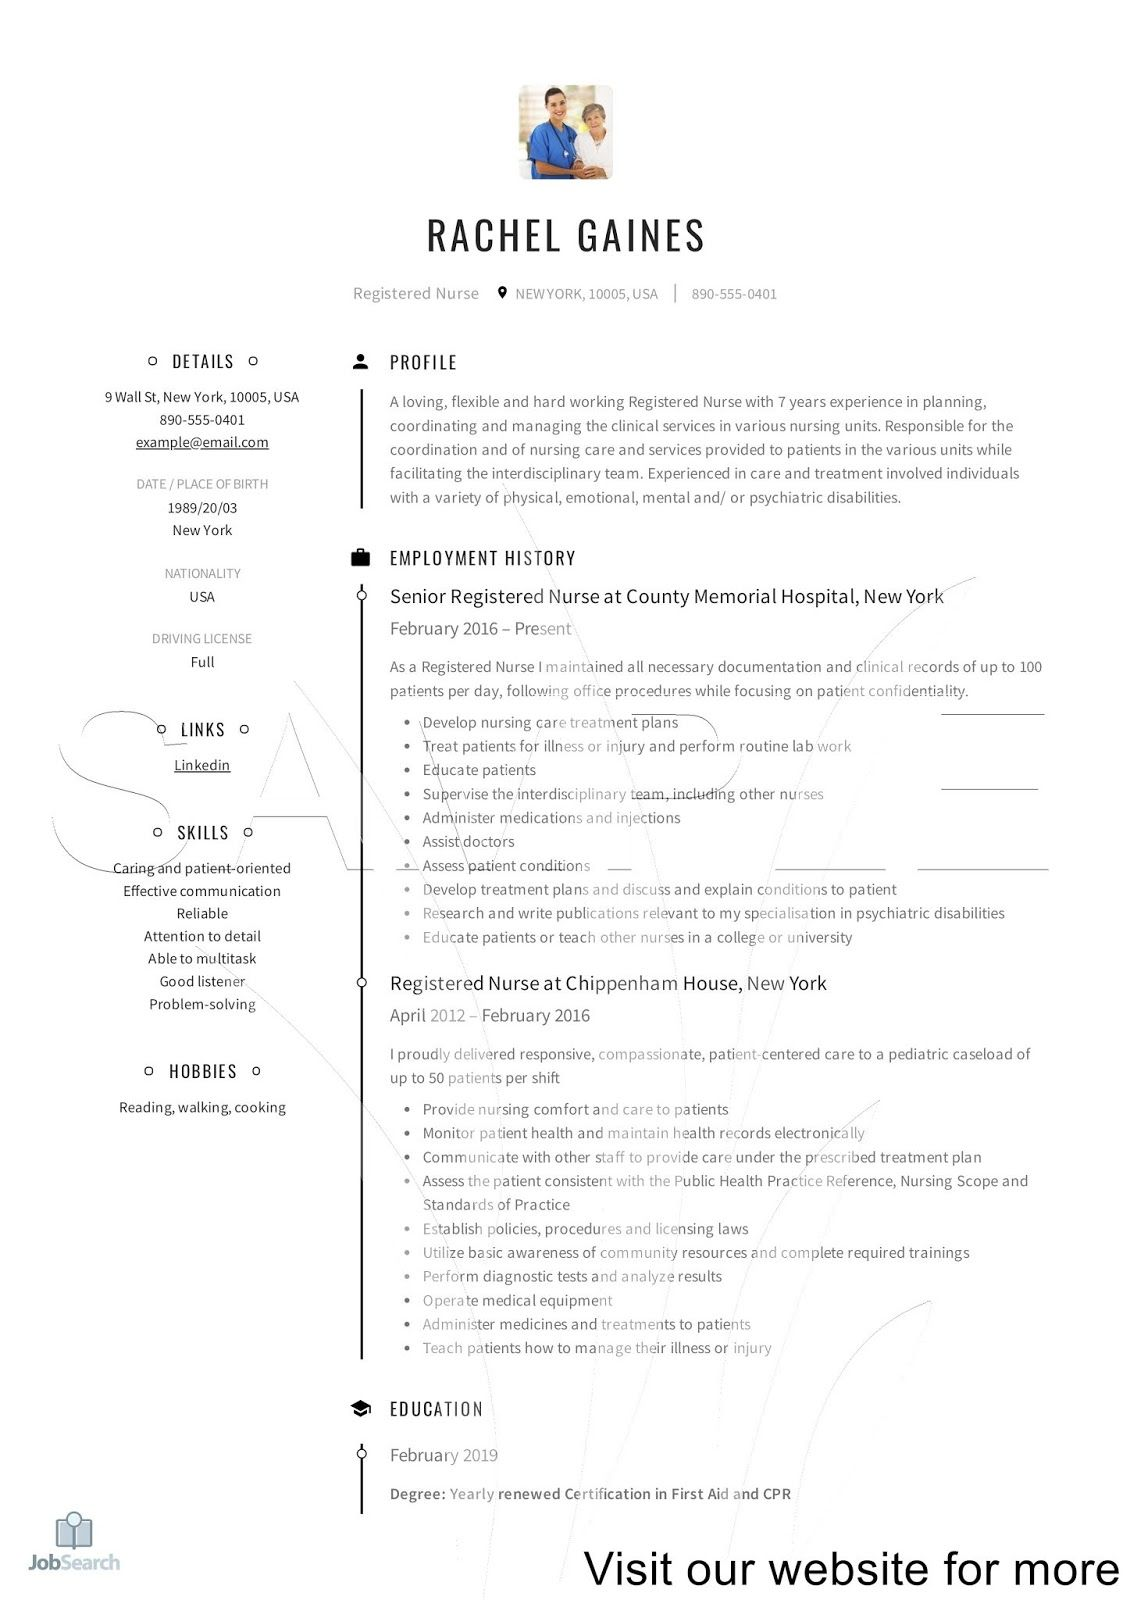 Nurse Resume Examples Cv Template 2020 in 2020 Resume